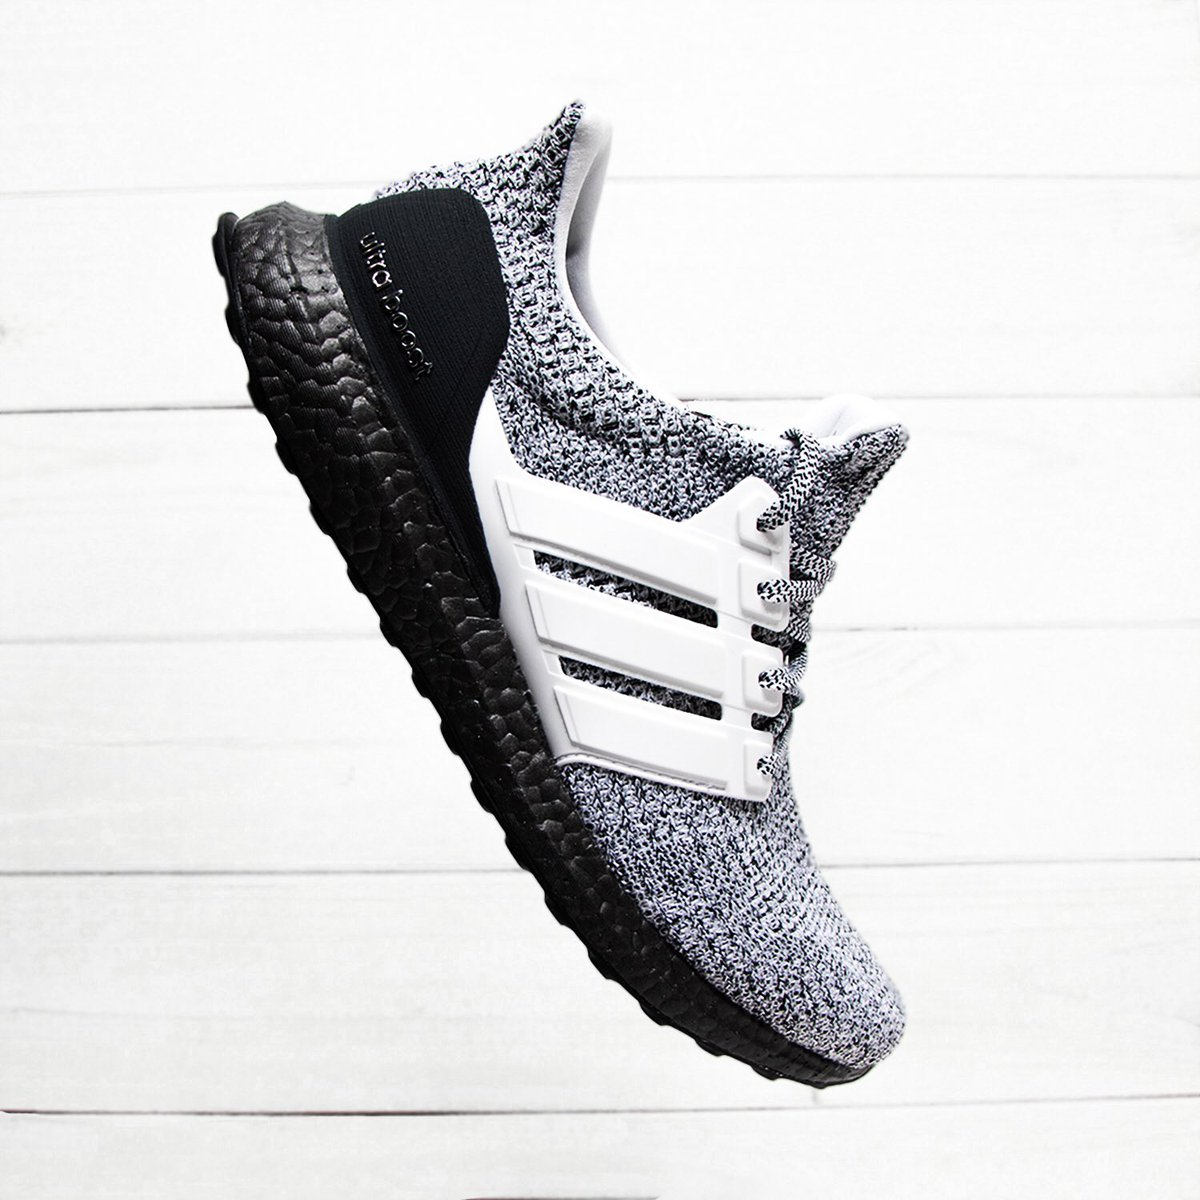 620d9fcbc ... clearance jimmy jazz on twitter the adidas ultra boost 4.0 cookies and  cream drops tomorrow 3